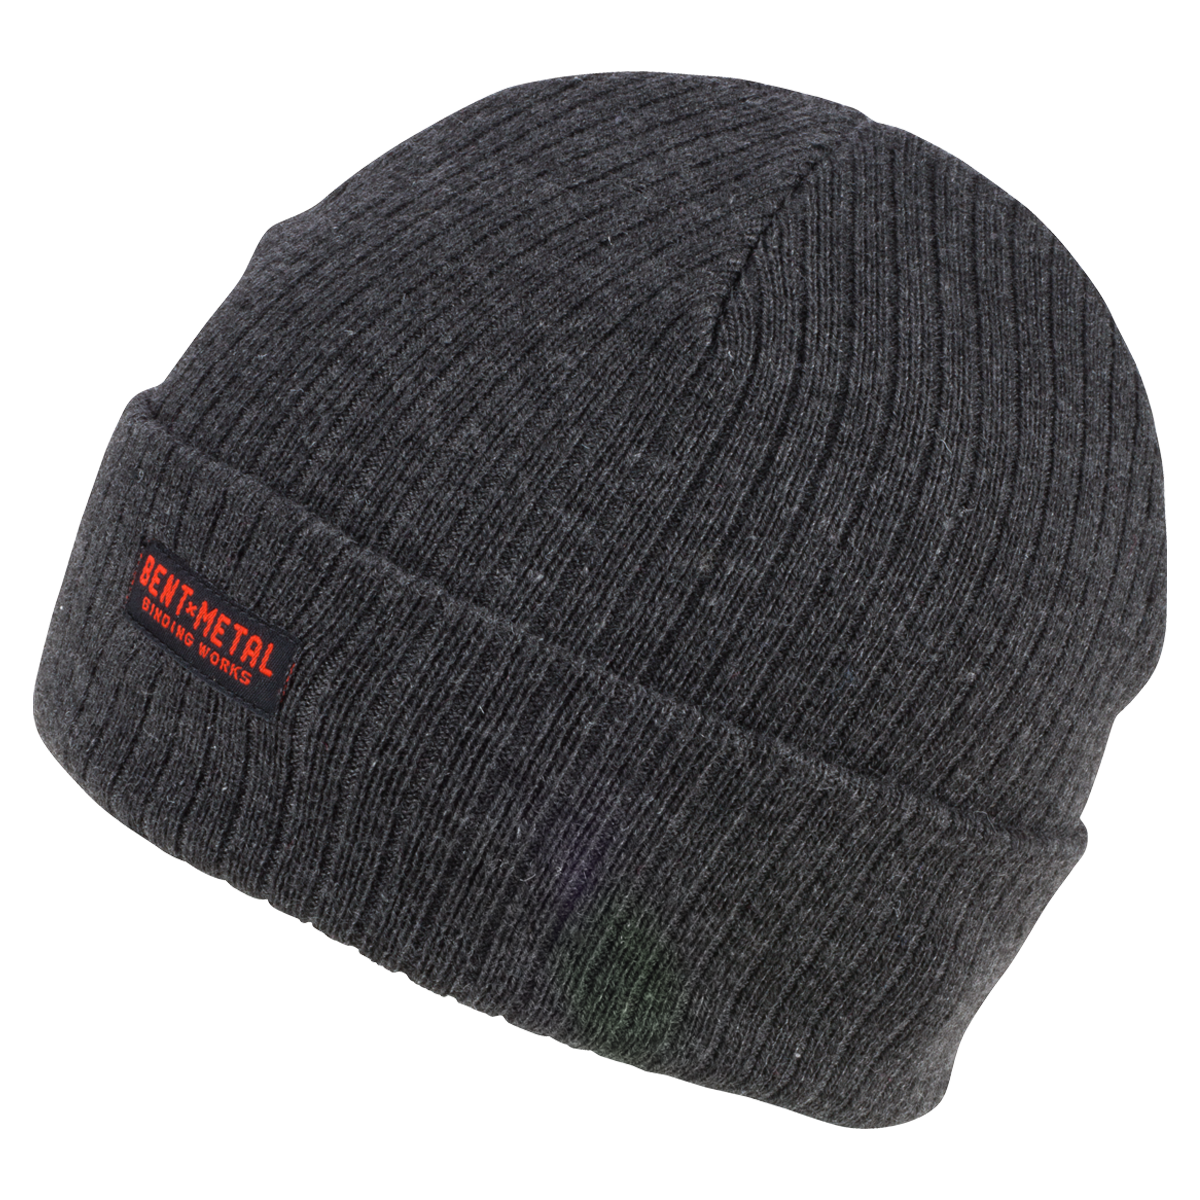 graphic black and white download Beanie transparent seattle 138. Motor bent metal binding